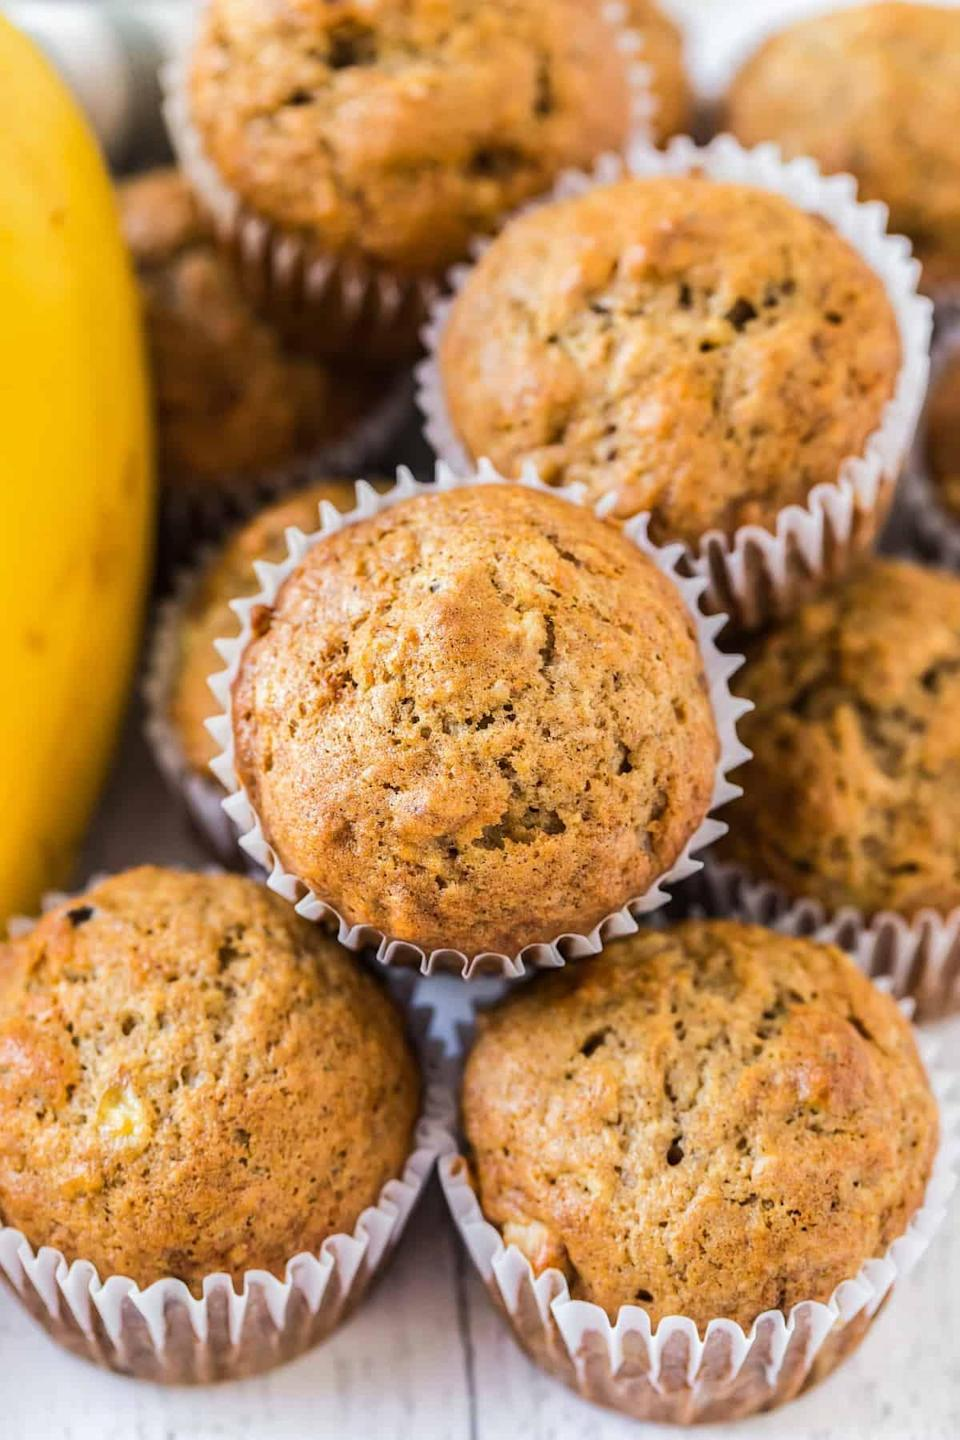 """<p>These might not rank as the healthiest muffins in the world, but they sure are tasty and we pretty much guarantee The Cookie Rookie's <a href=""""https://www.thecookierookie.com/banana-muffins/"""" class=""""link rapid-noclick-resp"""" rel=""""nofollow noopener"""" target=""""_blank"""" data-ylk=""""slk:banana muffins"""">banana muffins</a> will put a smile on your kids' faces on school mornings! </p>"""